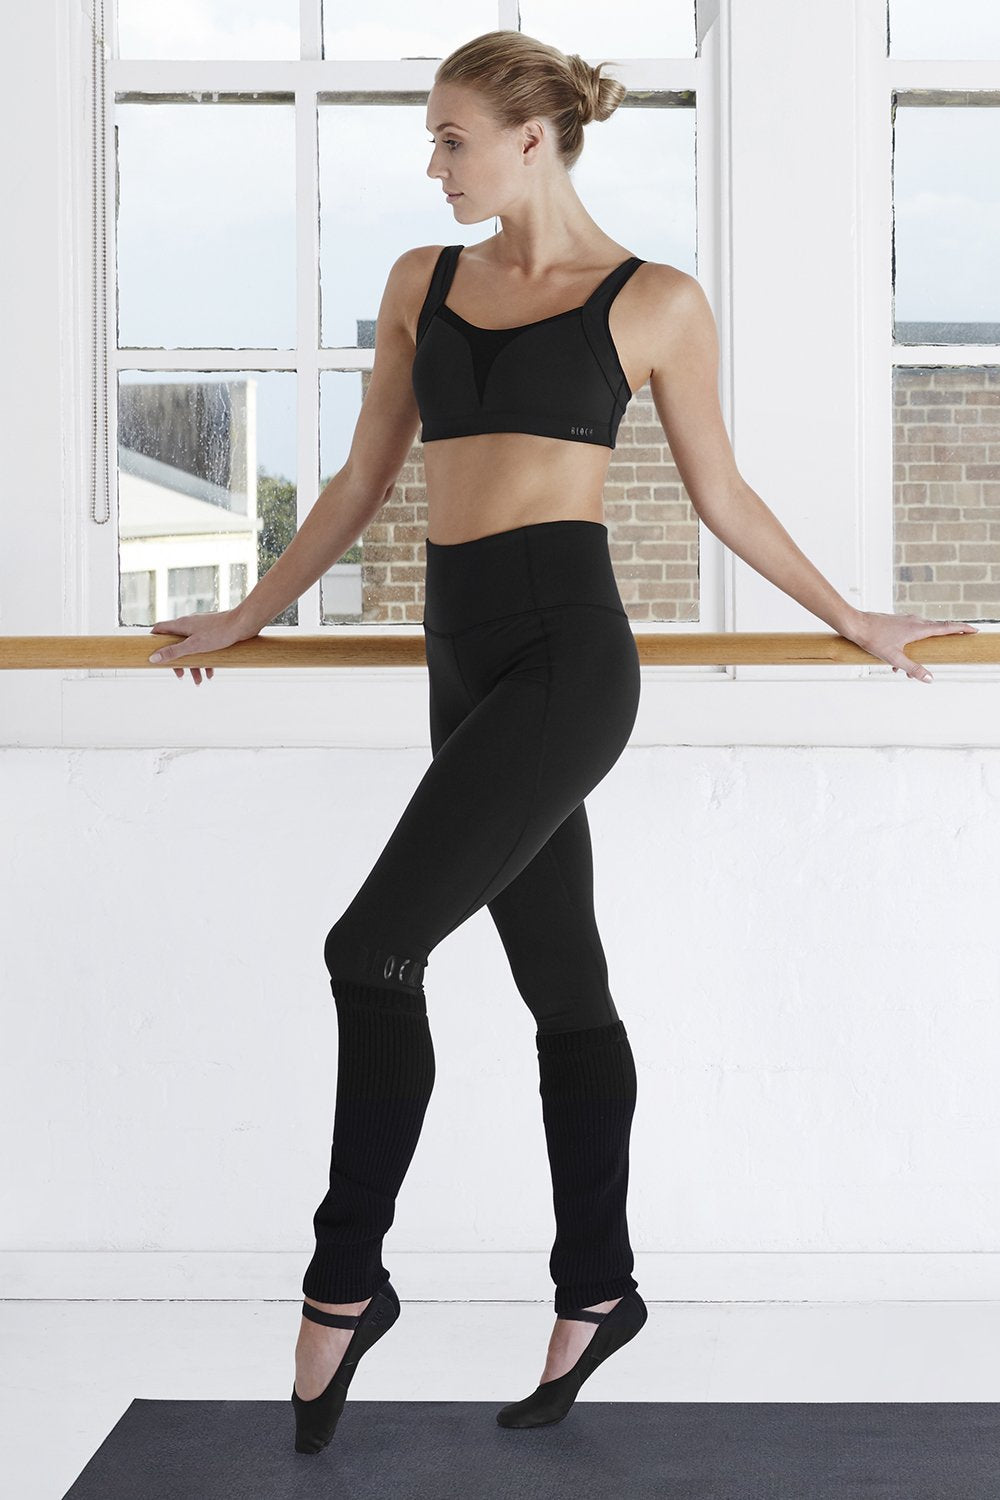 Black Bloch Ladies Legging w Legwarmer on female model with feet in fourth position with arms resting on the ballet barre